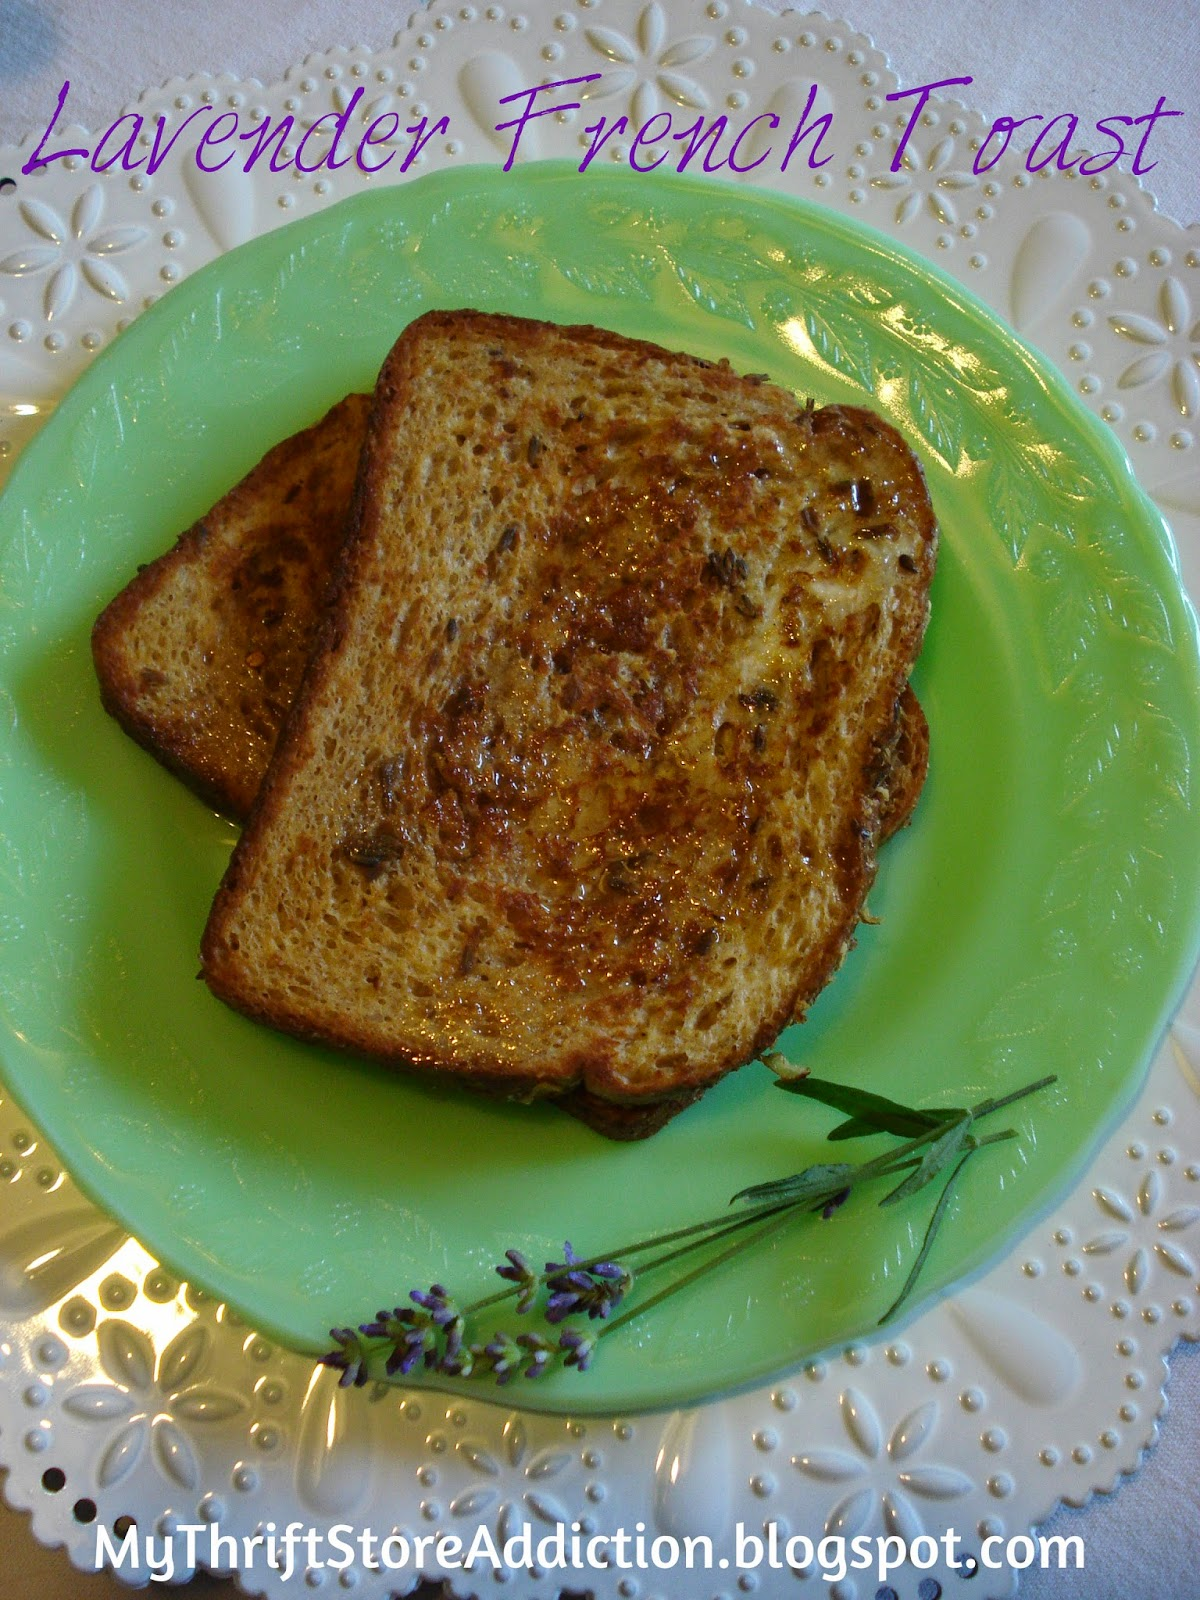 Lavender French toast